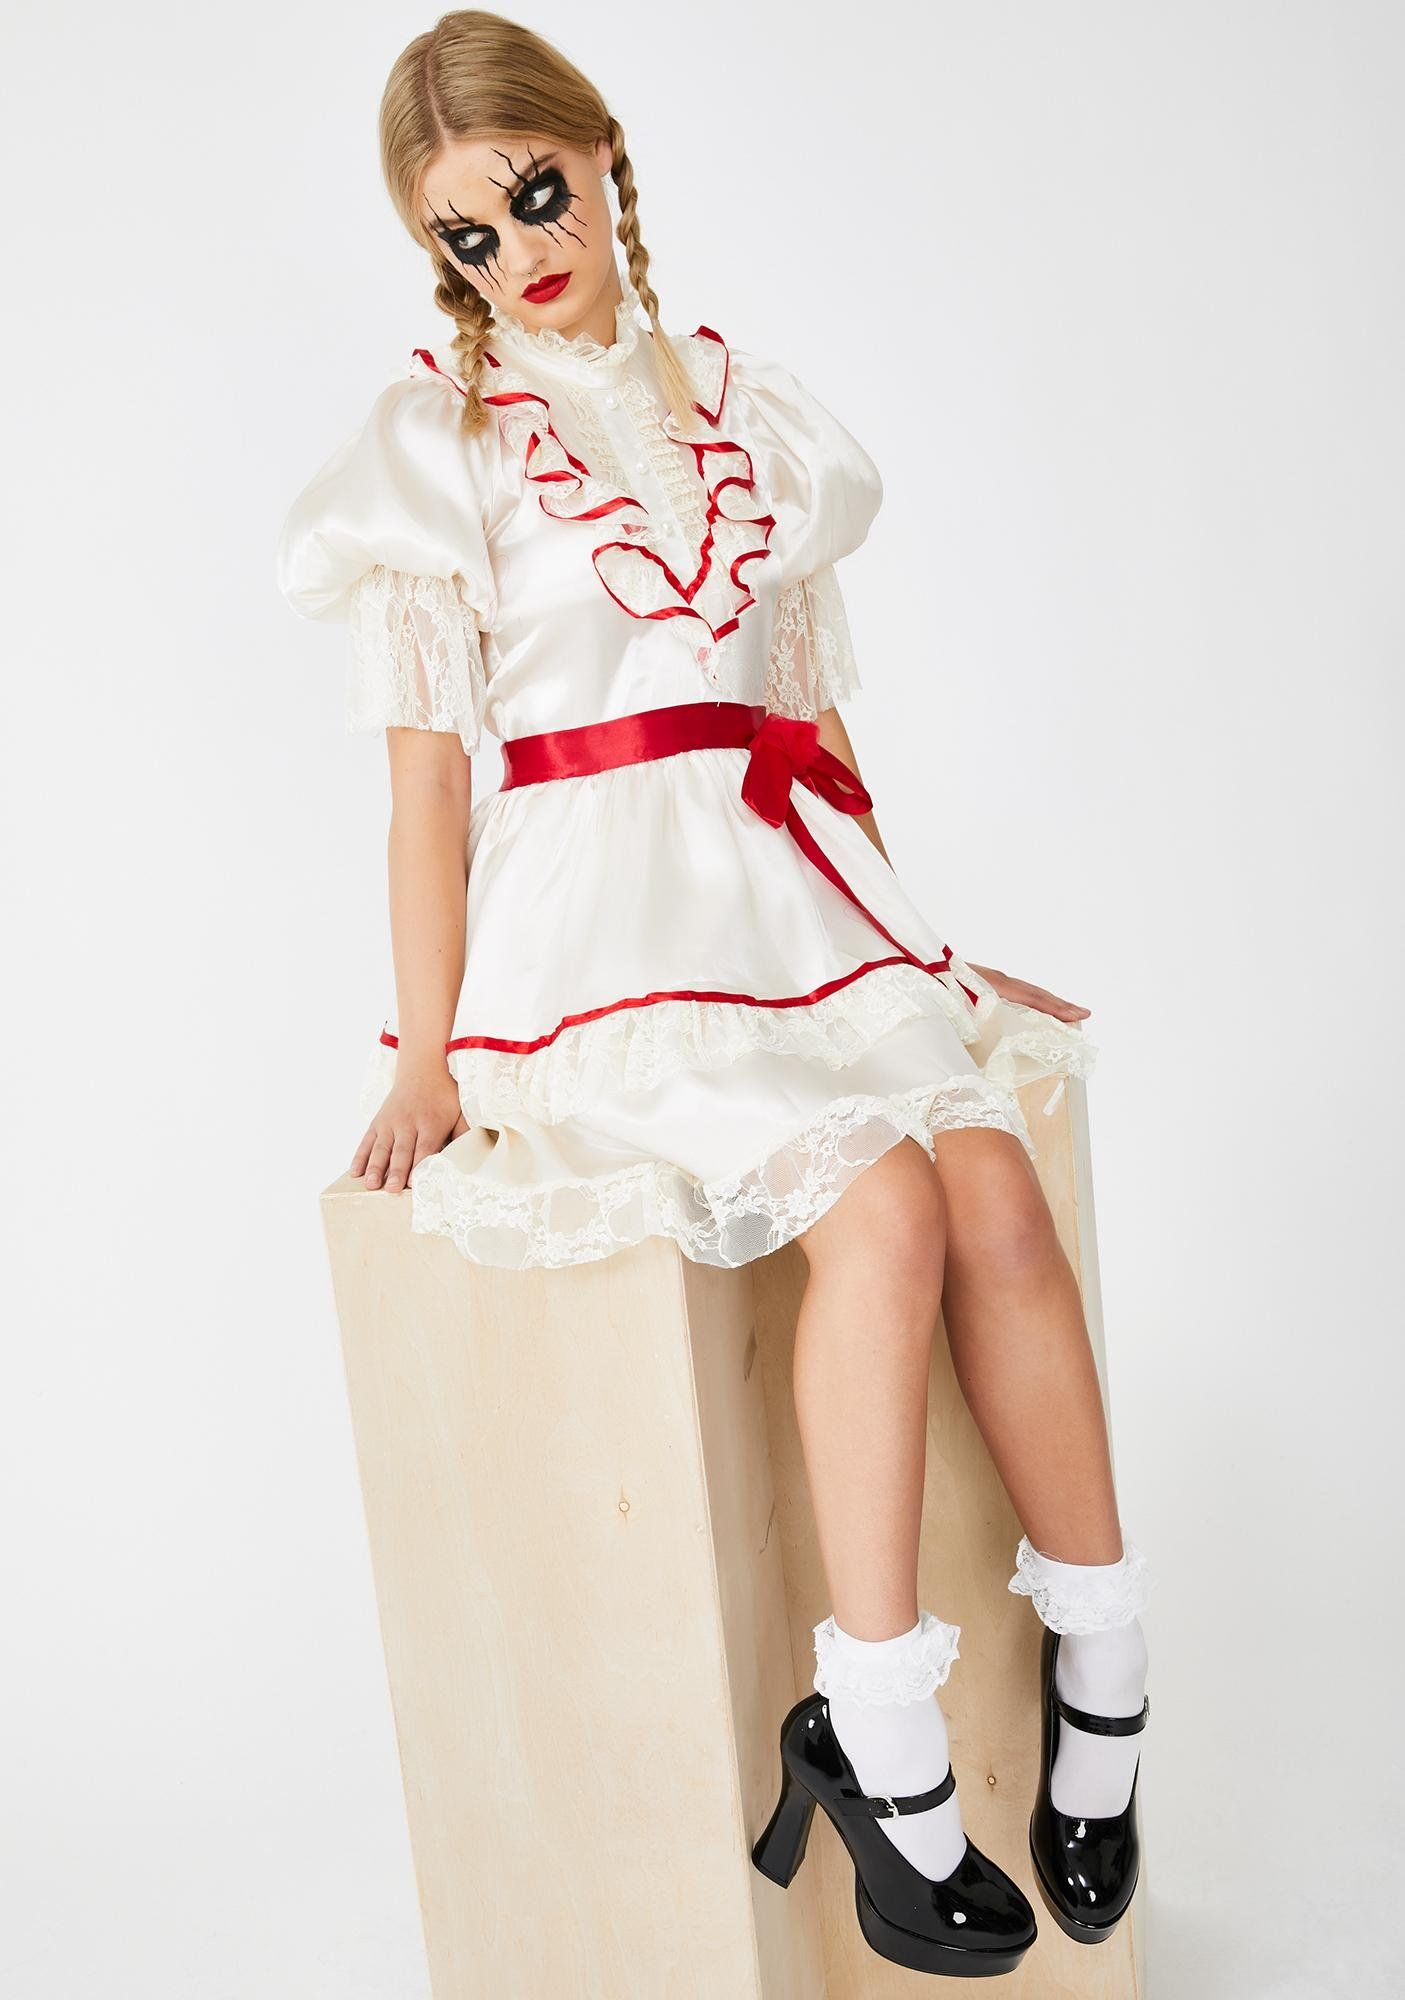 Haunted Doll Costume Set in 2020 Doll costume, Haunted